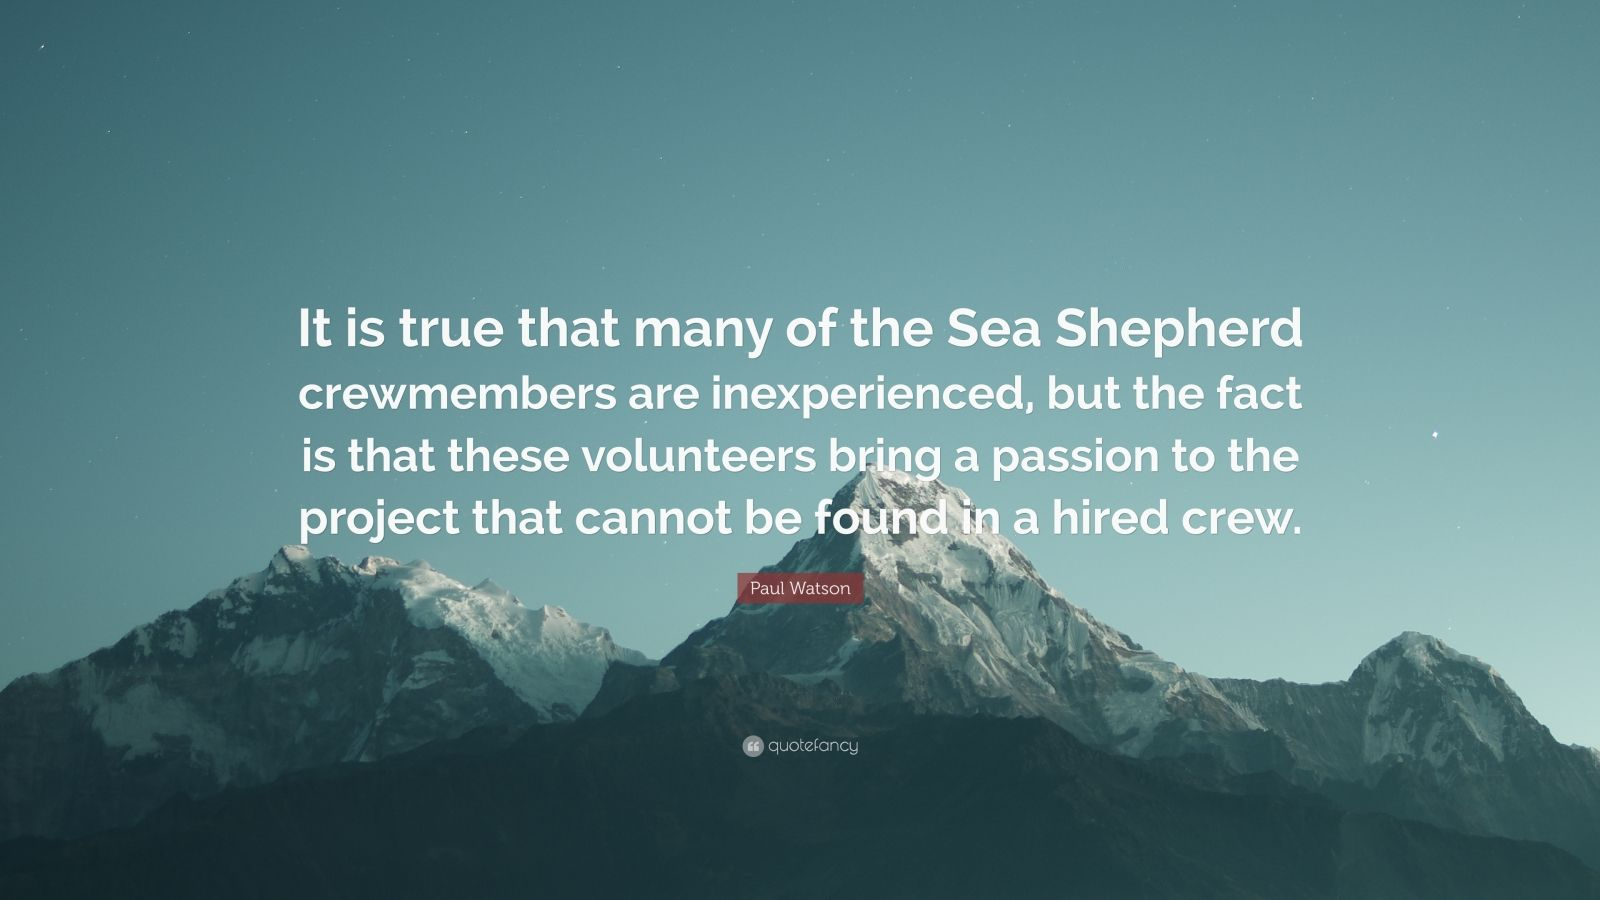 """Paul Watson Quote: """"It is true that many of the Sea Shepherd crewmembers are inexperienced, but the fact is that these volunteers bring a passion to the project that cannot be found in a hired crew."""""""